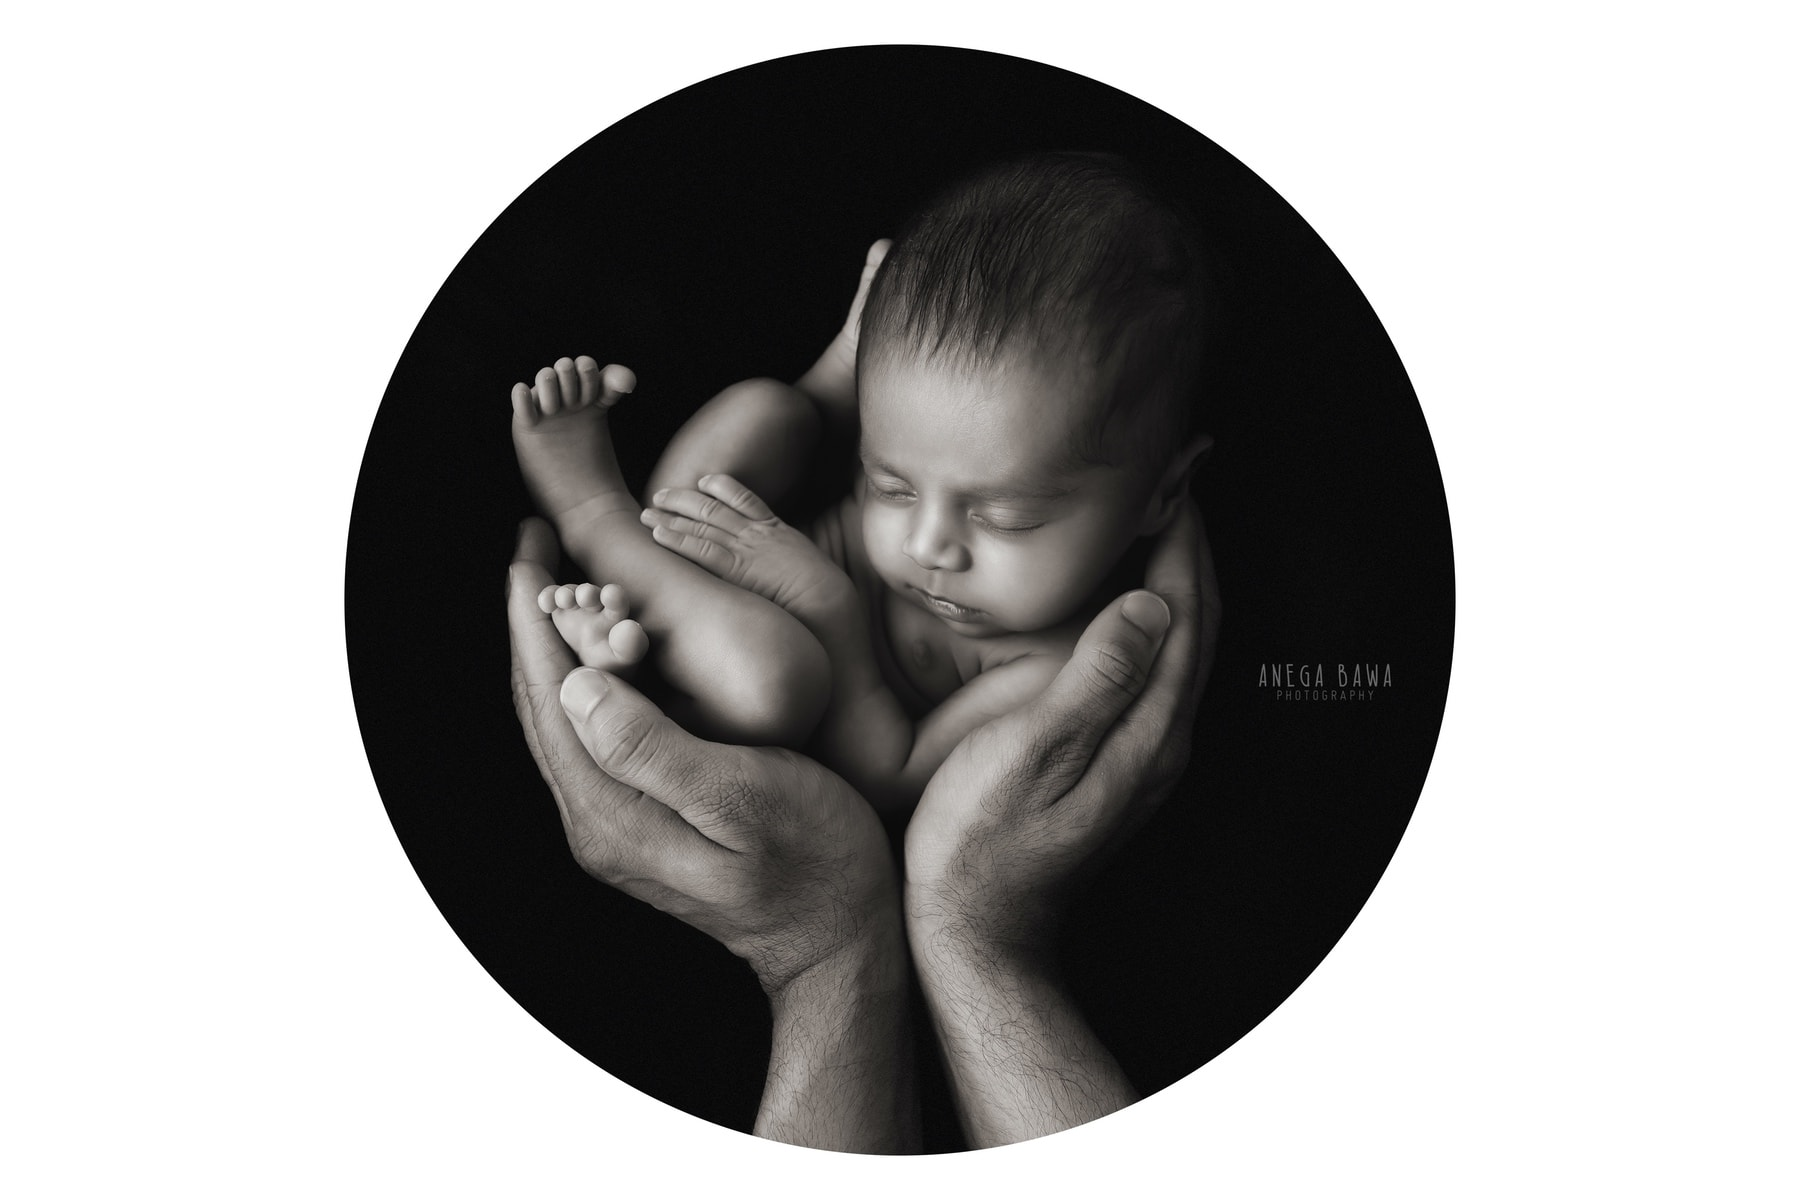 black white newborn photography delhi 10 days baby boy photoshoot gurgaon anega bawa